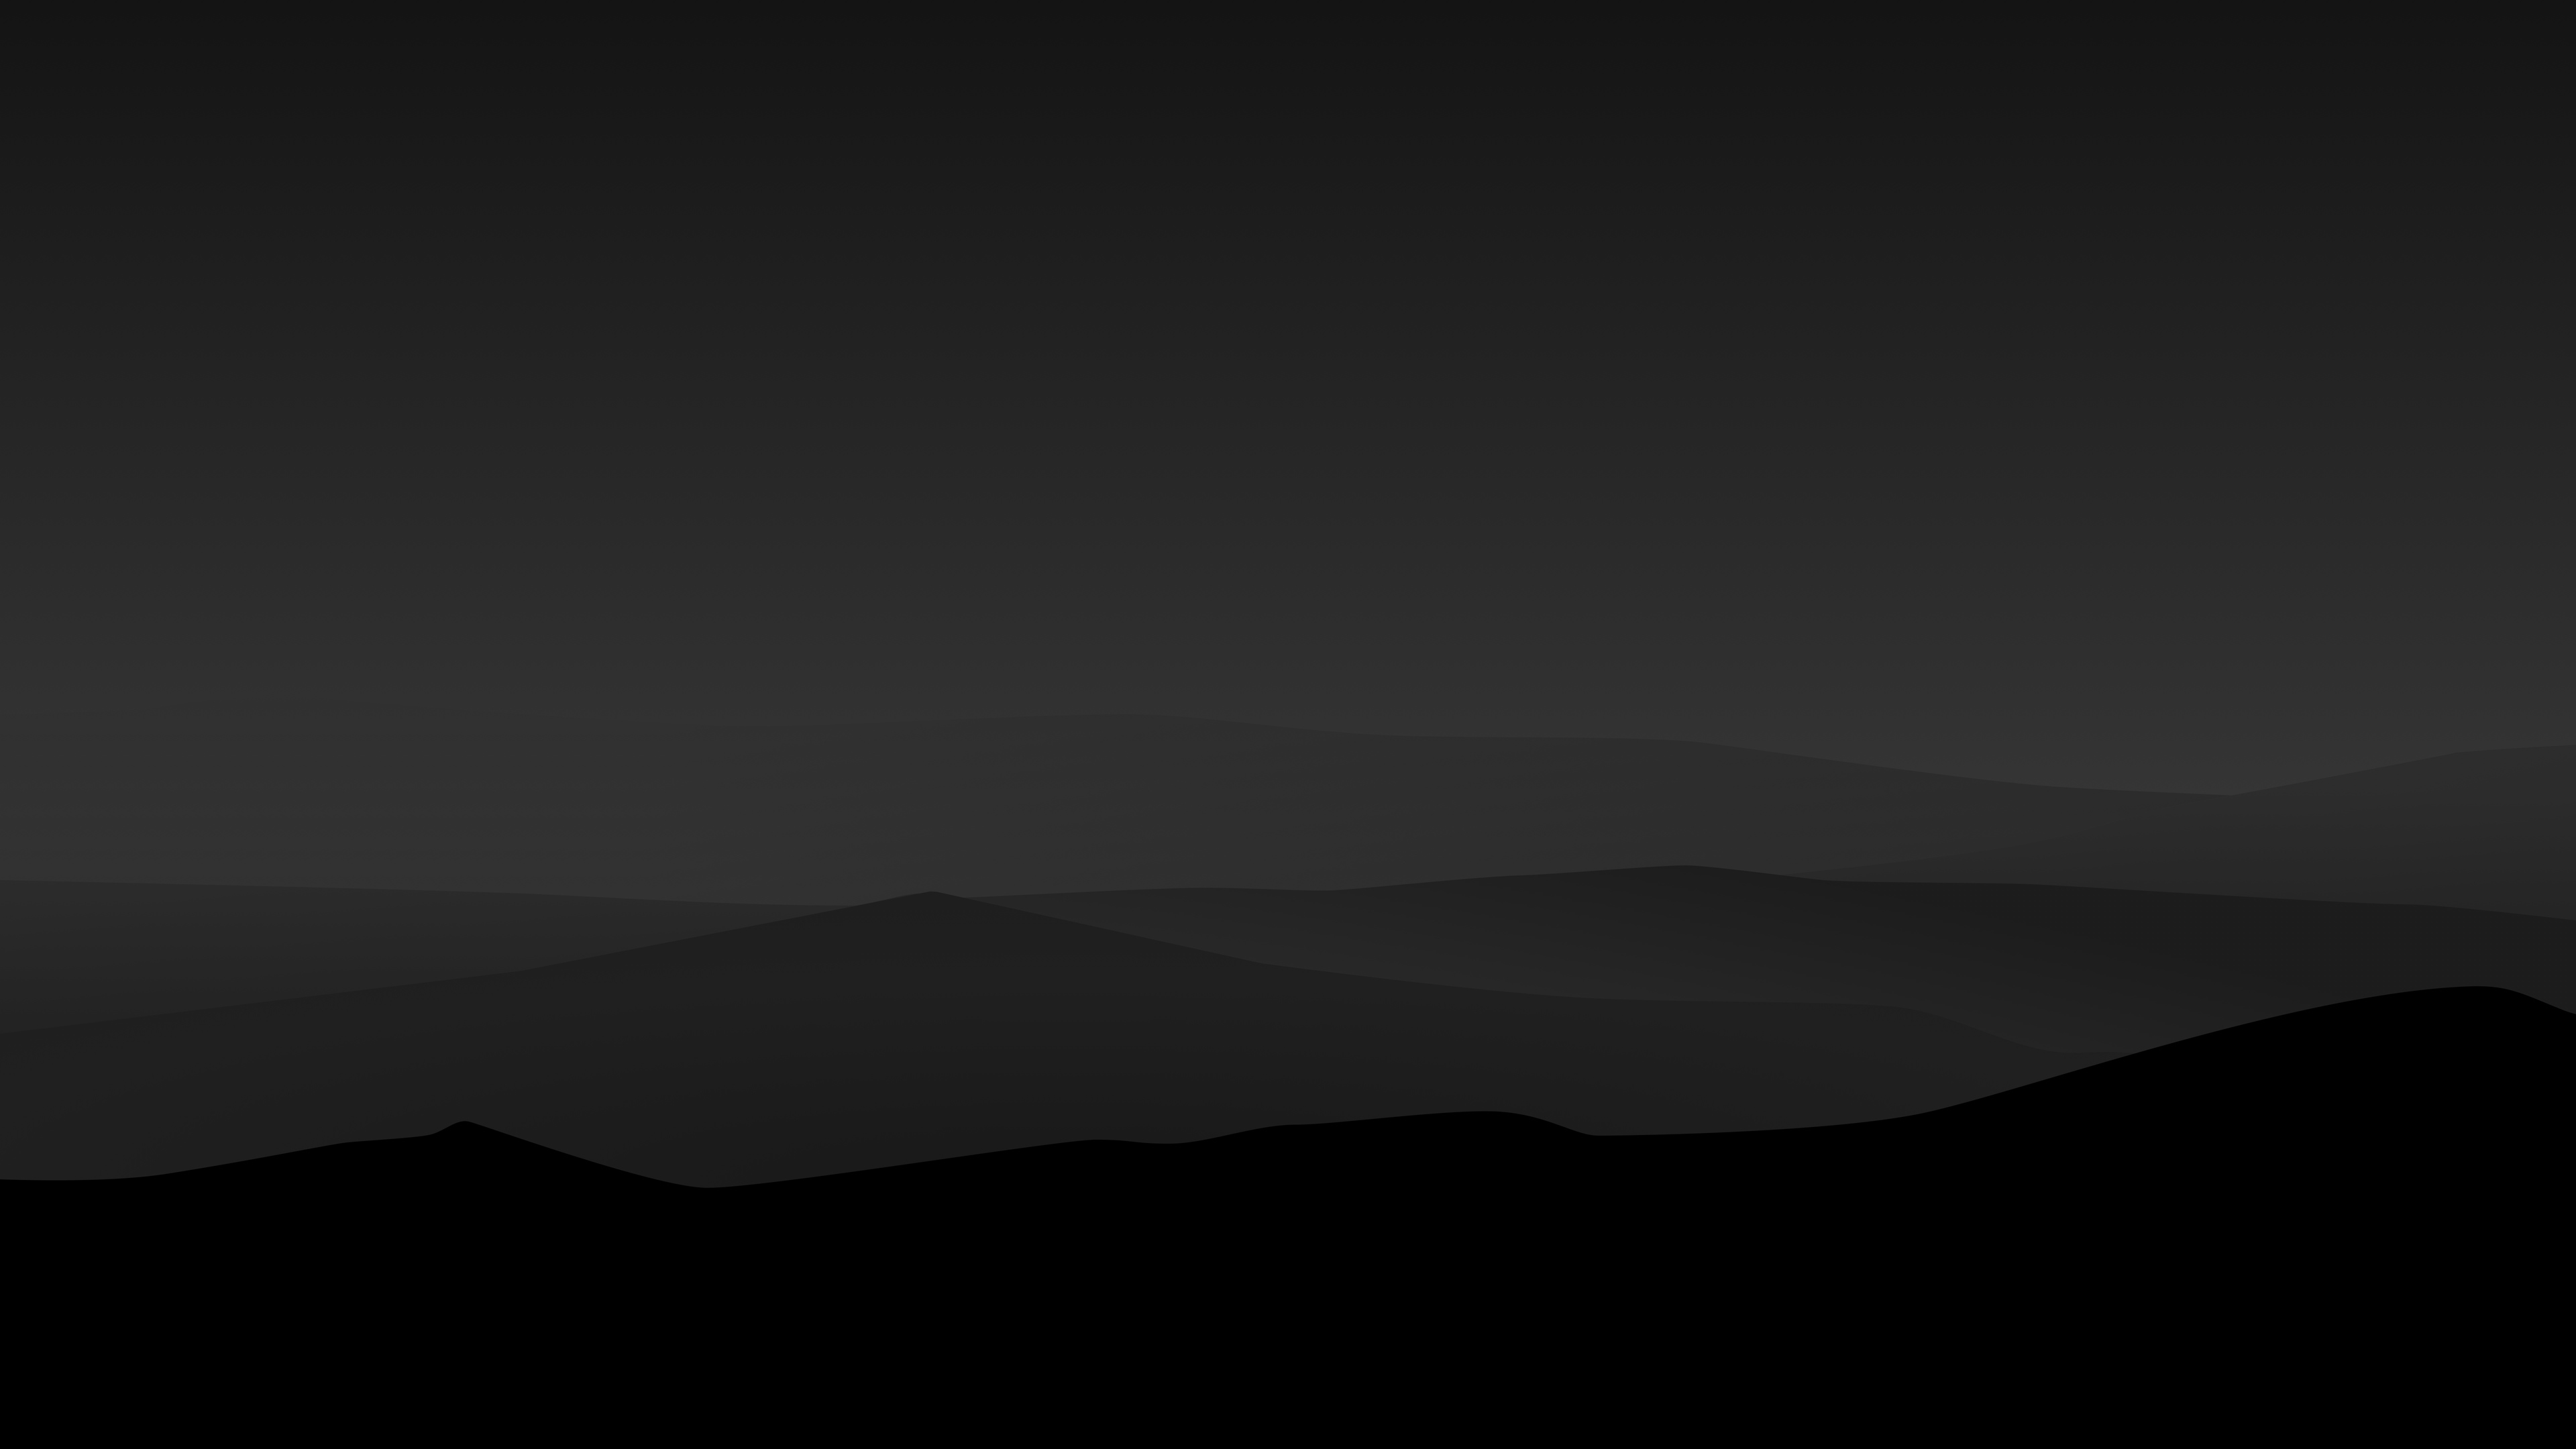 Dark Night Mountains Minimalist 4k simple background ...